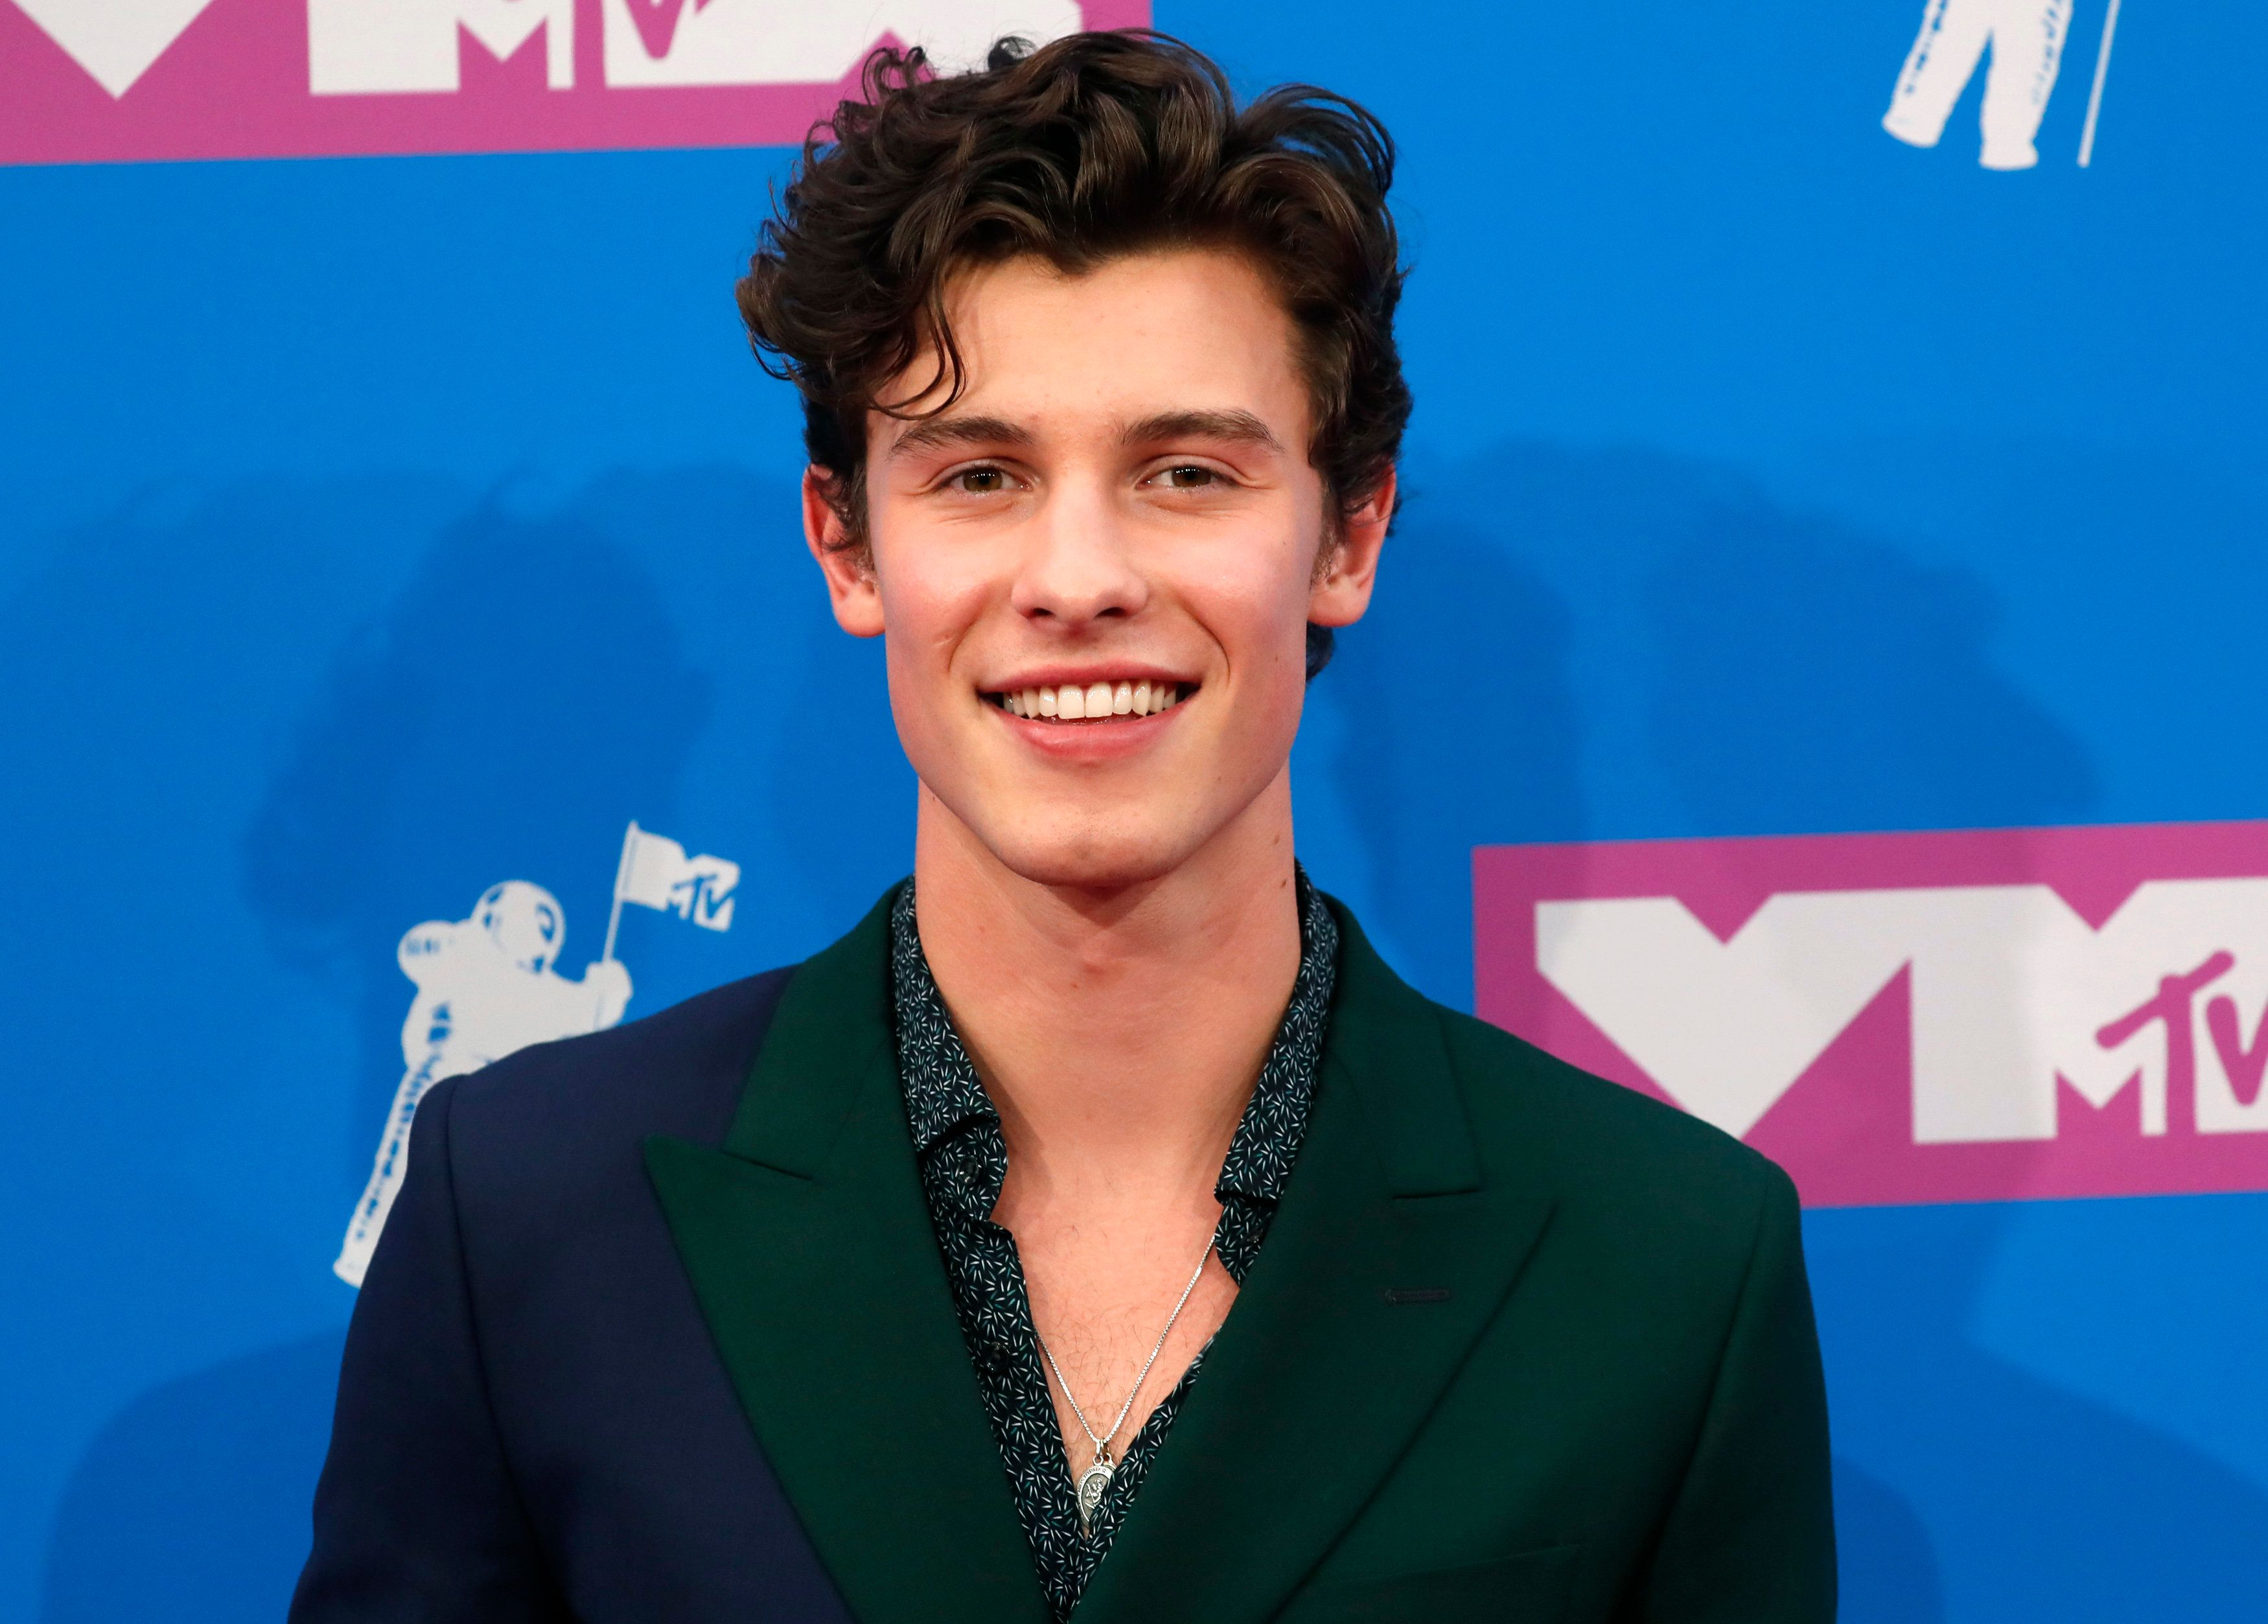 Shawn Mendes Addresses Gay Rumors